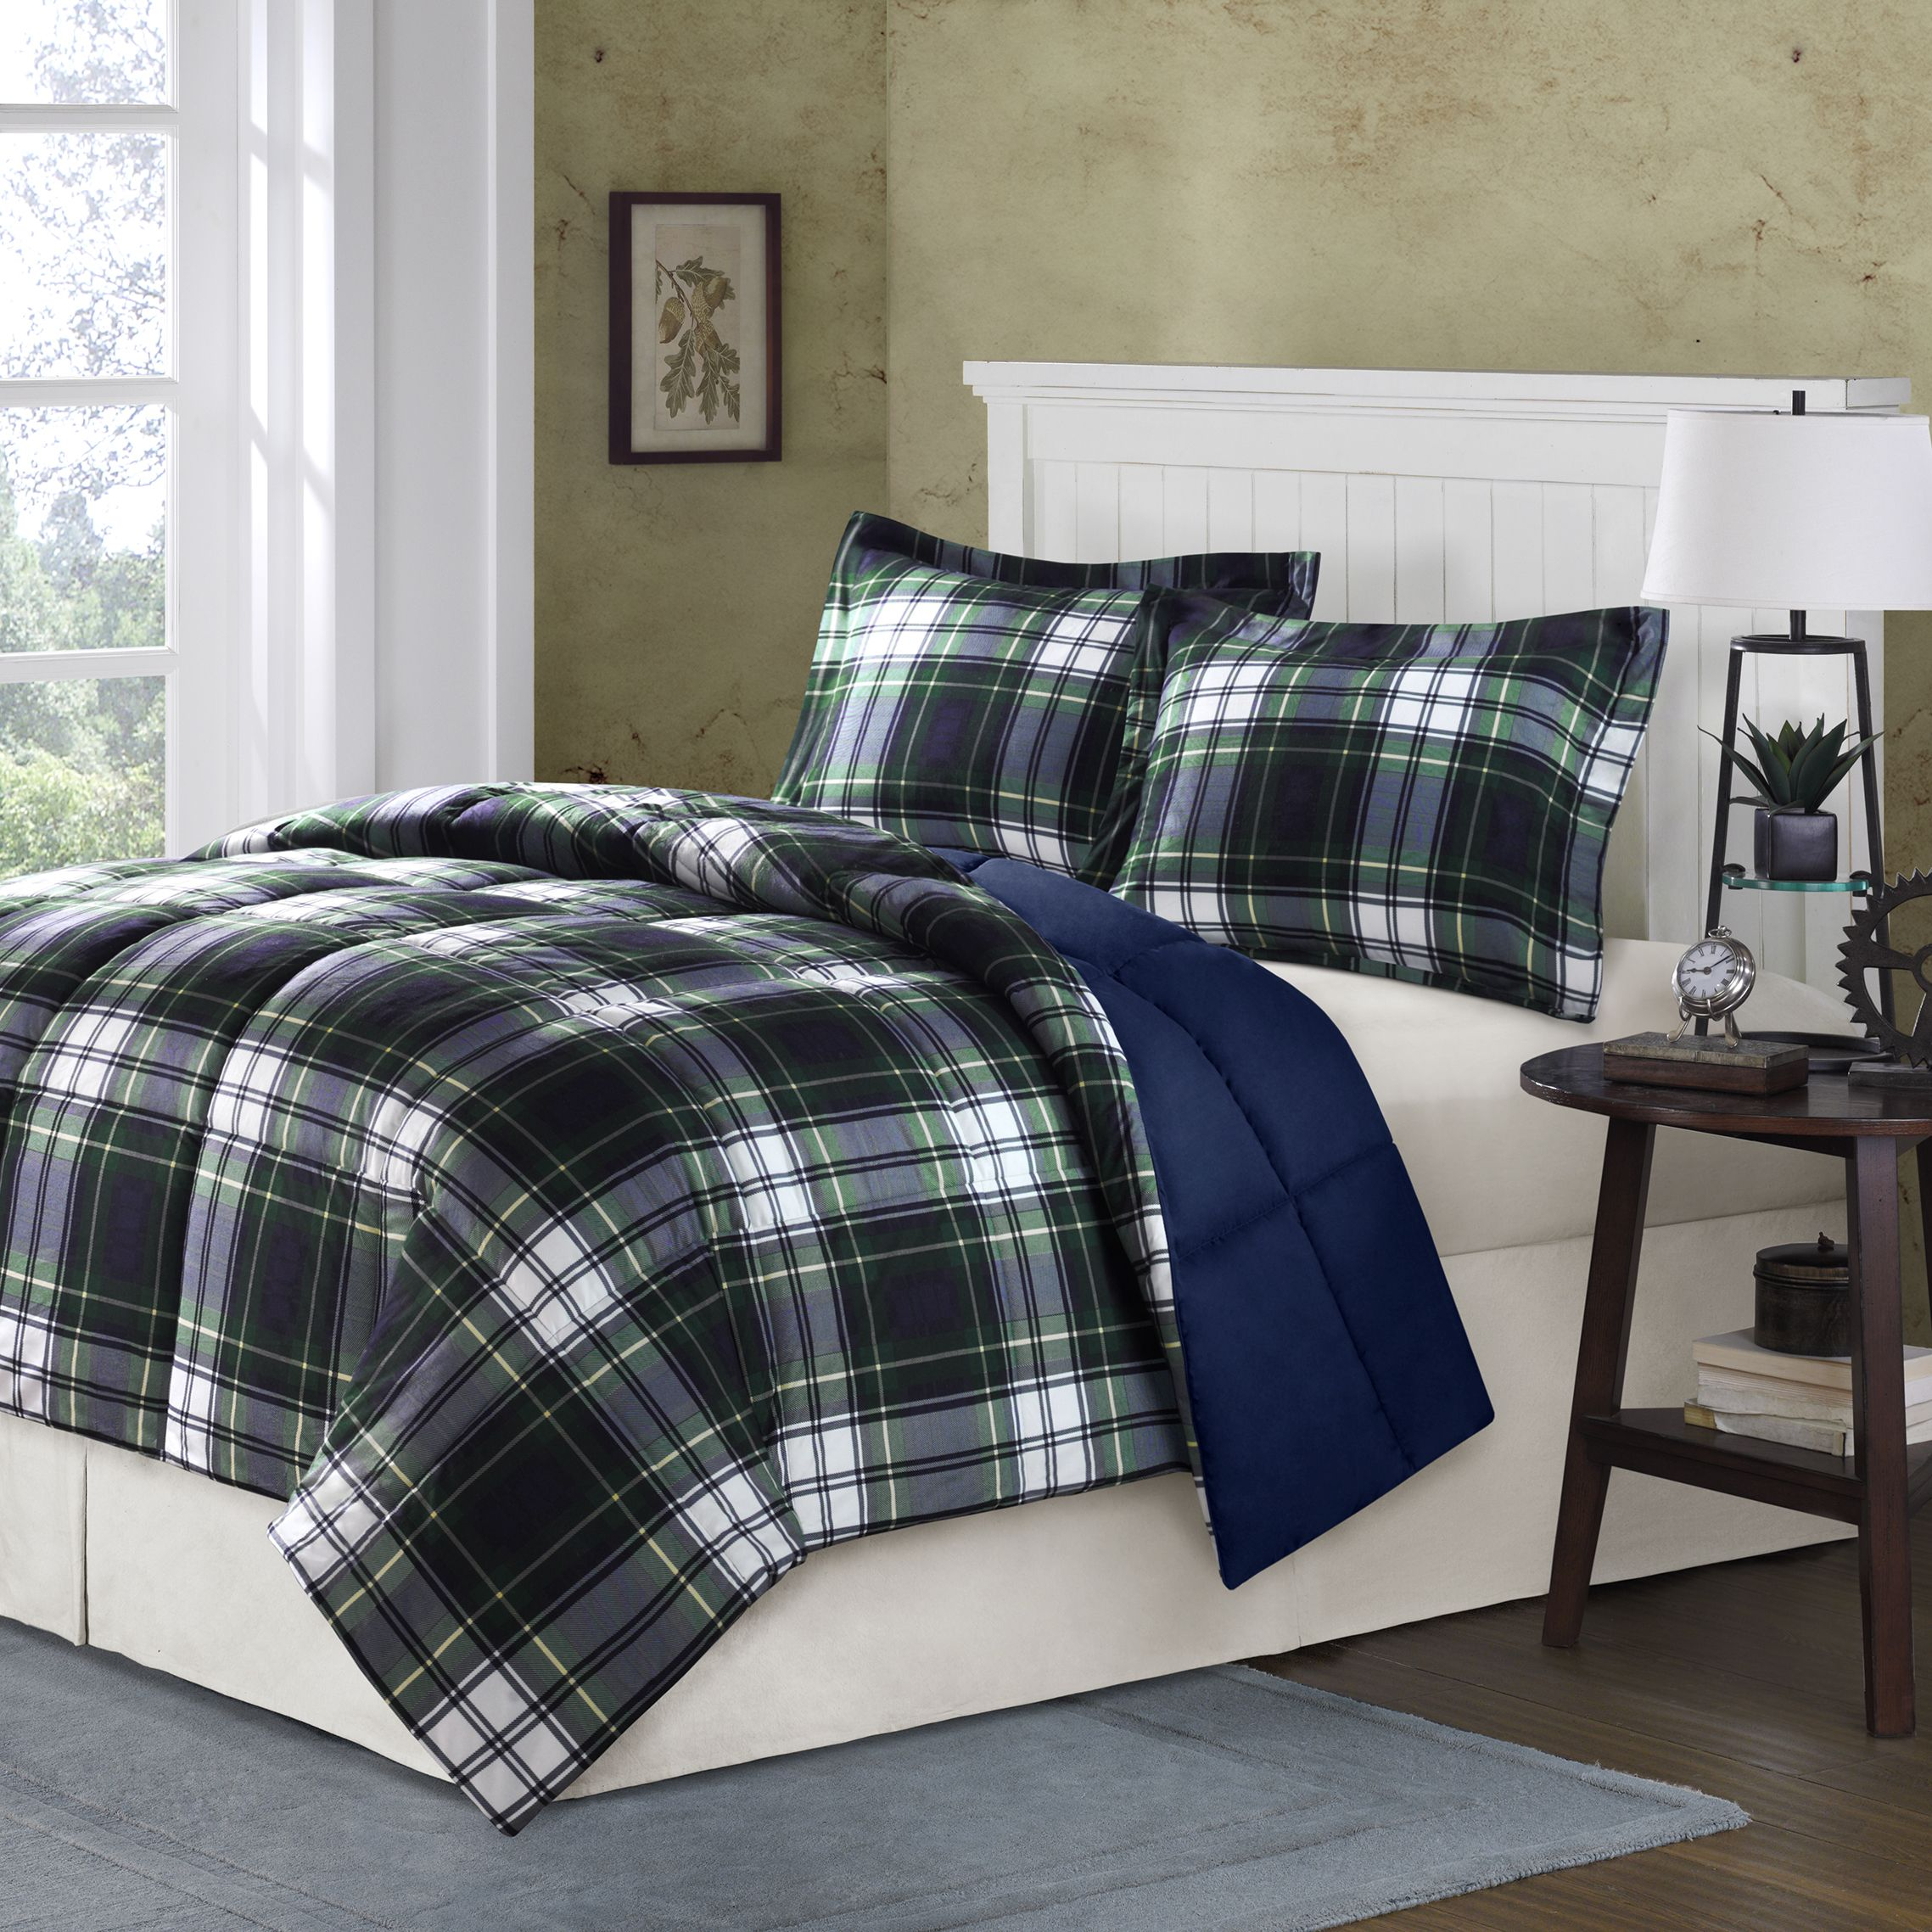 nursery green also and king decoration plus blue of set size light full comforter plaid twin